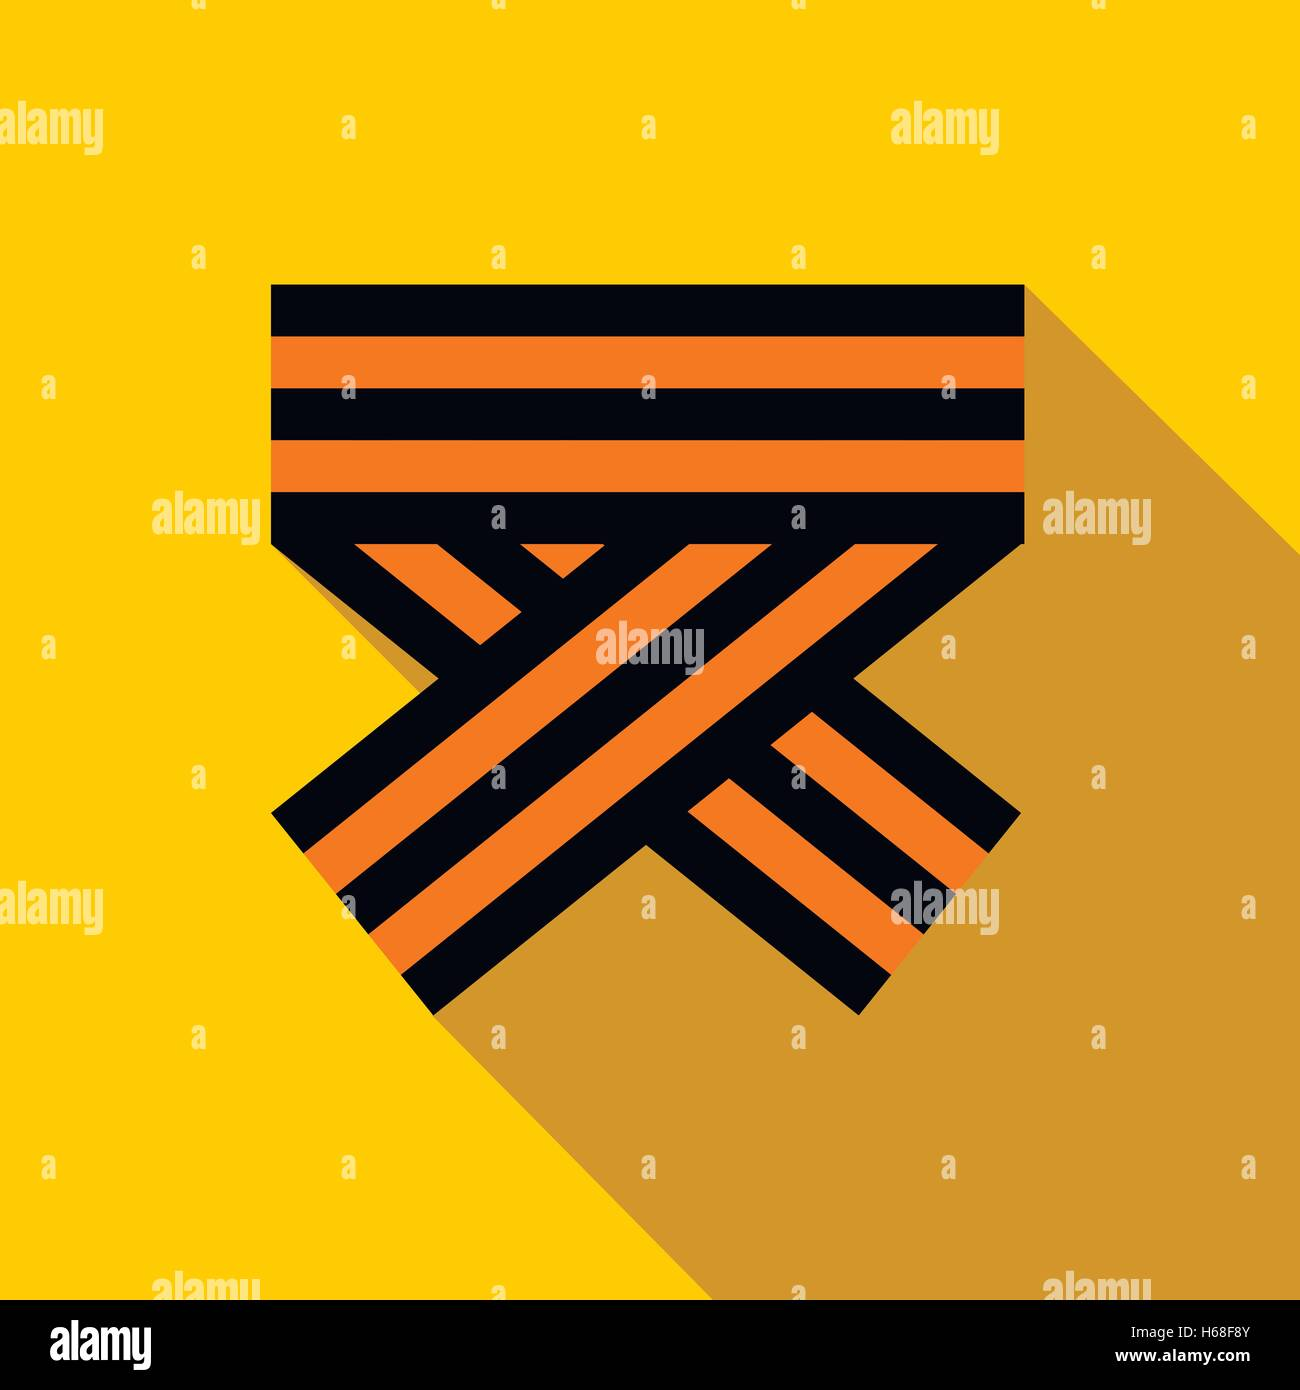 Orange and black striped ribbon symbol icon - Stock Vector